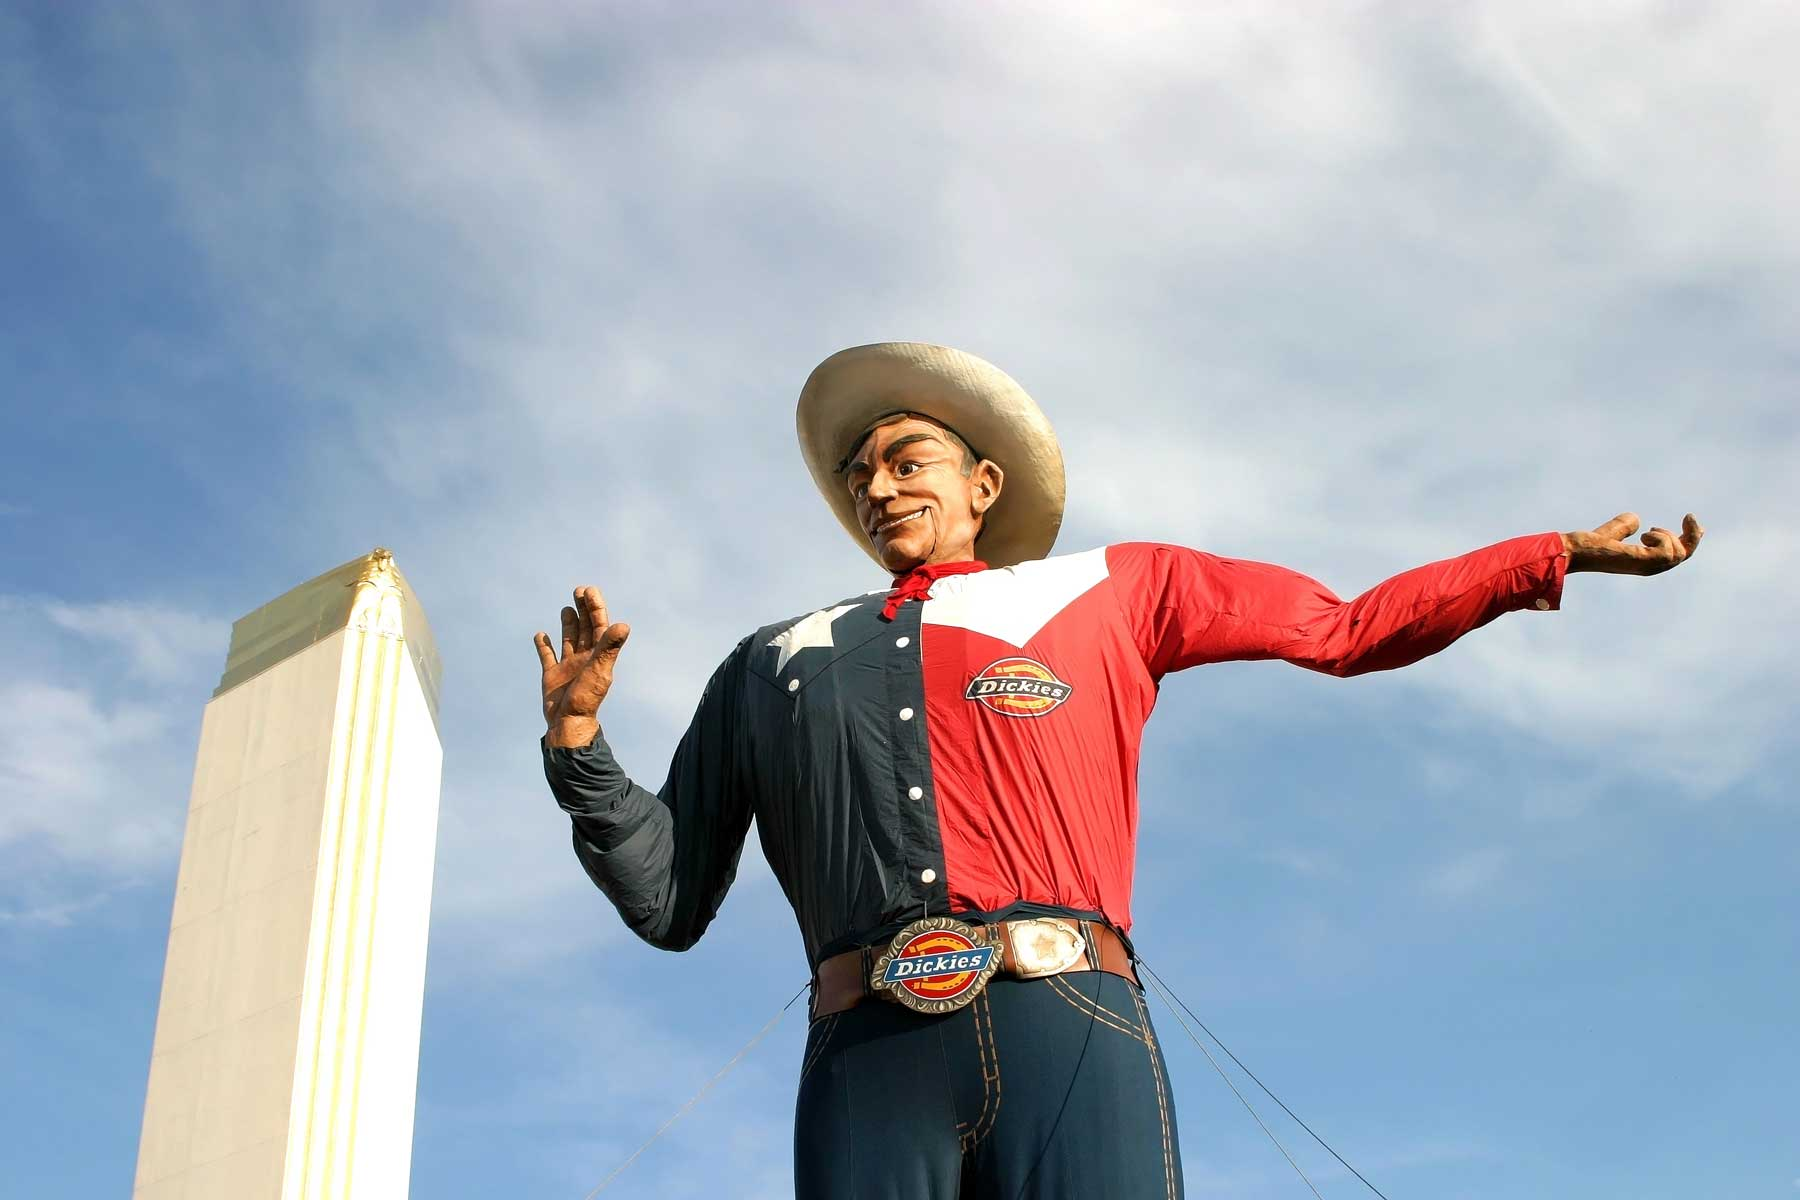 Big Tex, State Fair of Texas in Dallas, Texas